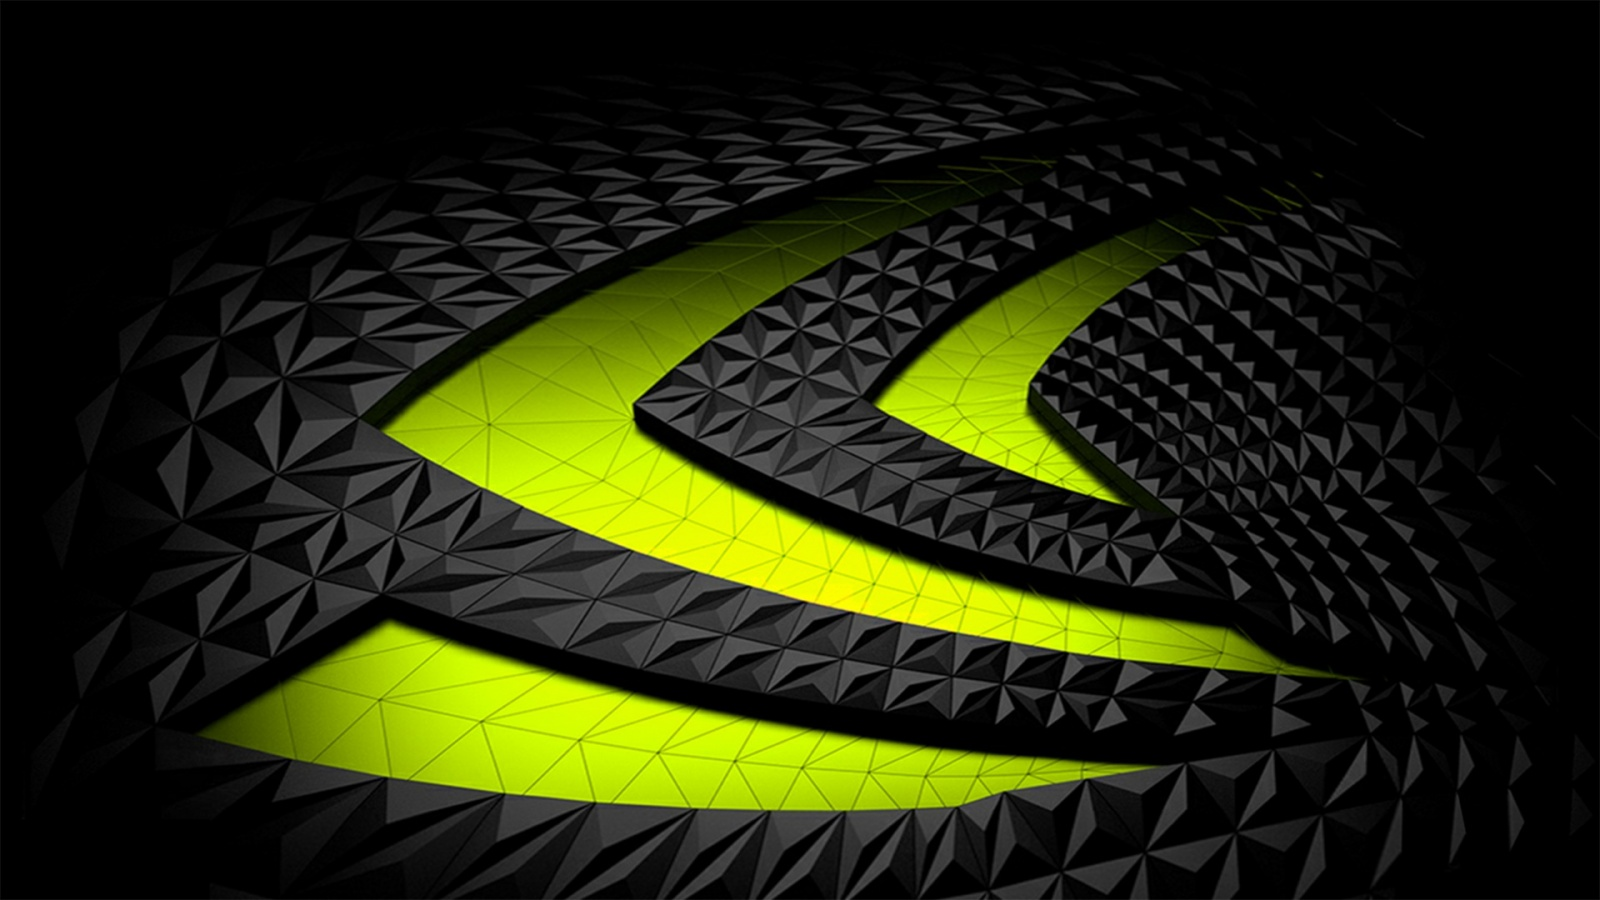 Nvidia Geforce Wallpapers - 1600x900 - 277010